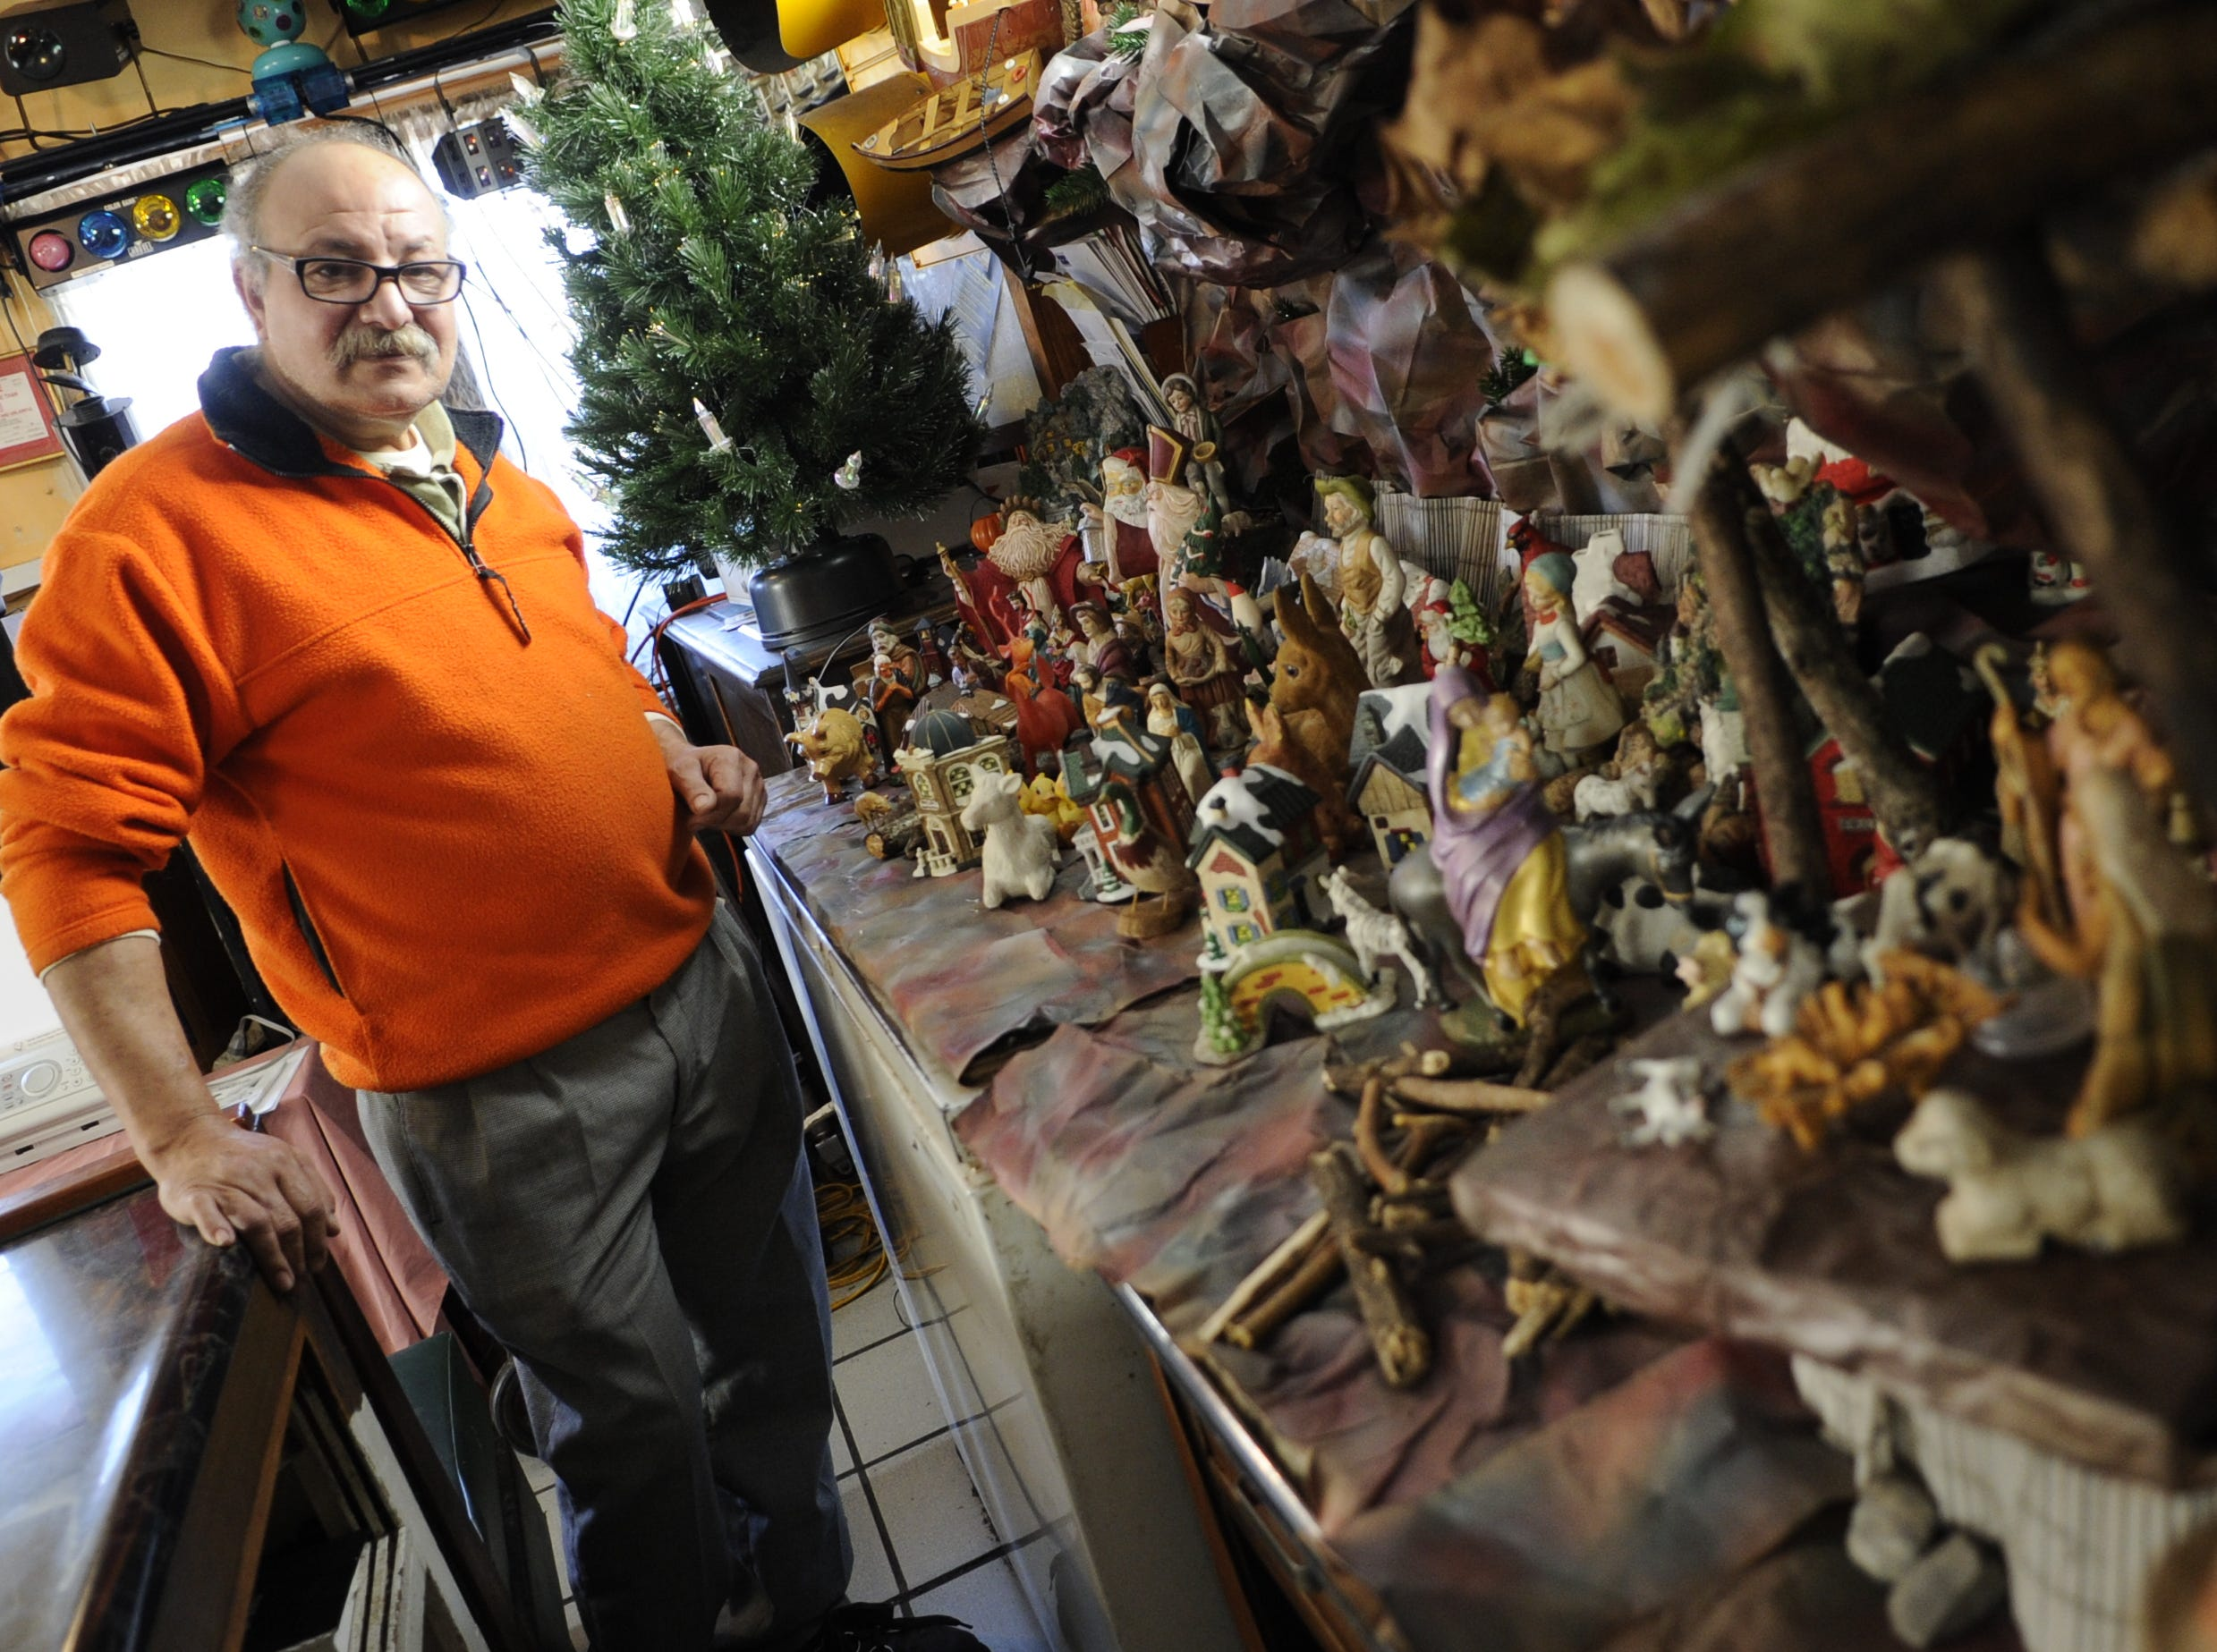 Mo Girgis, owner of King Tut Grill in South Knoxville, has built a unique collection into a Nativity scene along a wall in his eatery. Girgis has been in  business for 18 years and displays the items yearly.